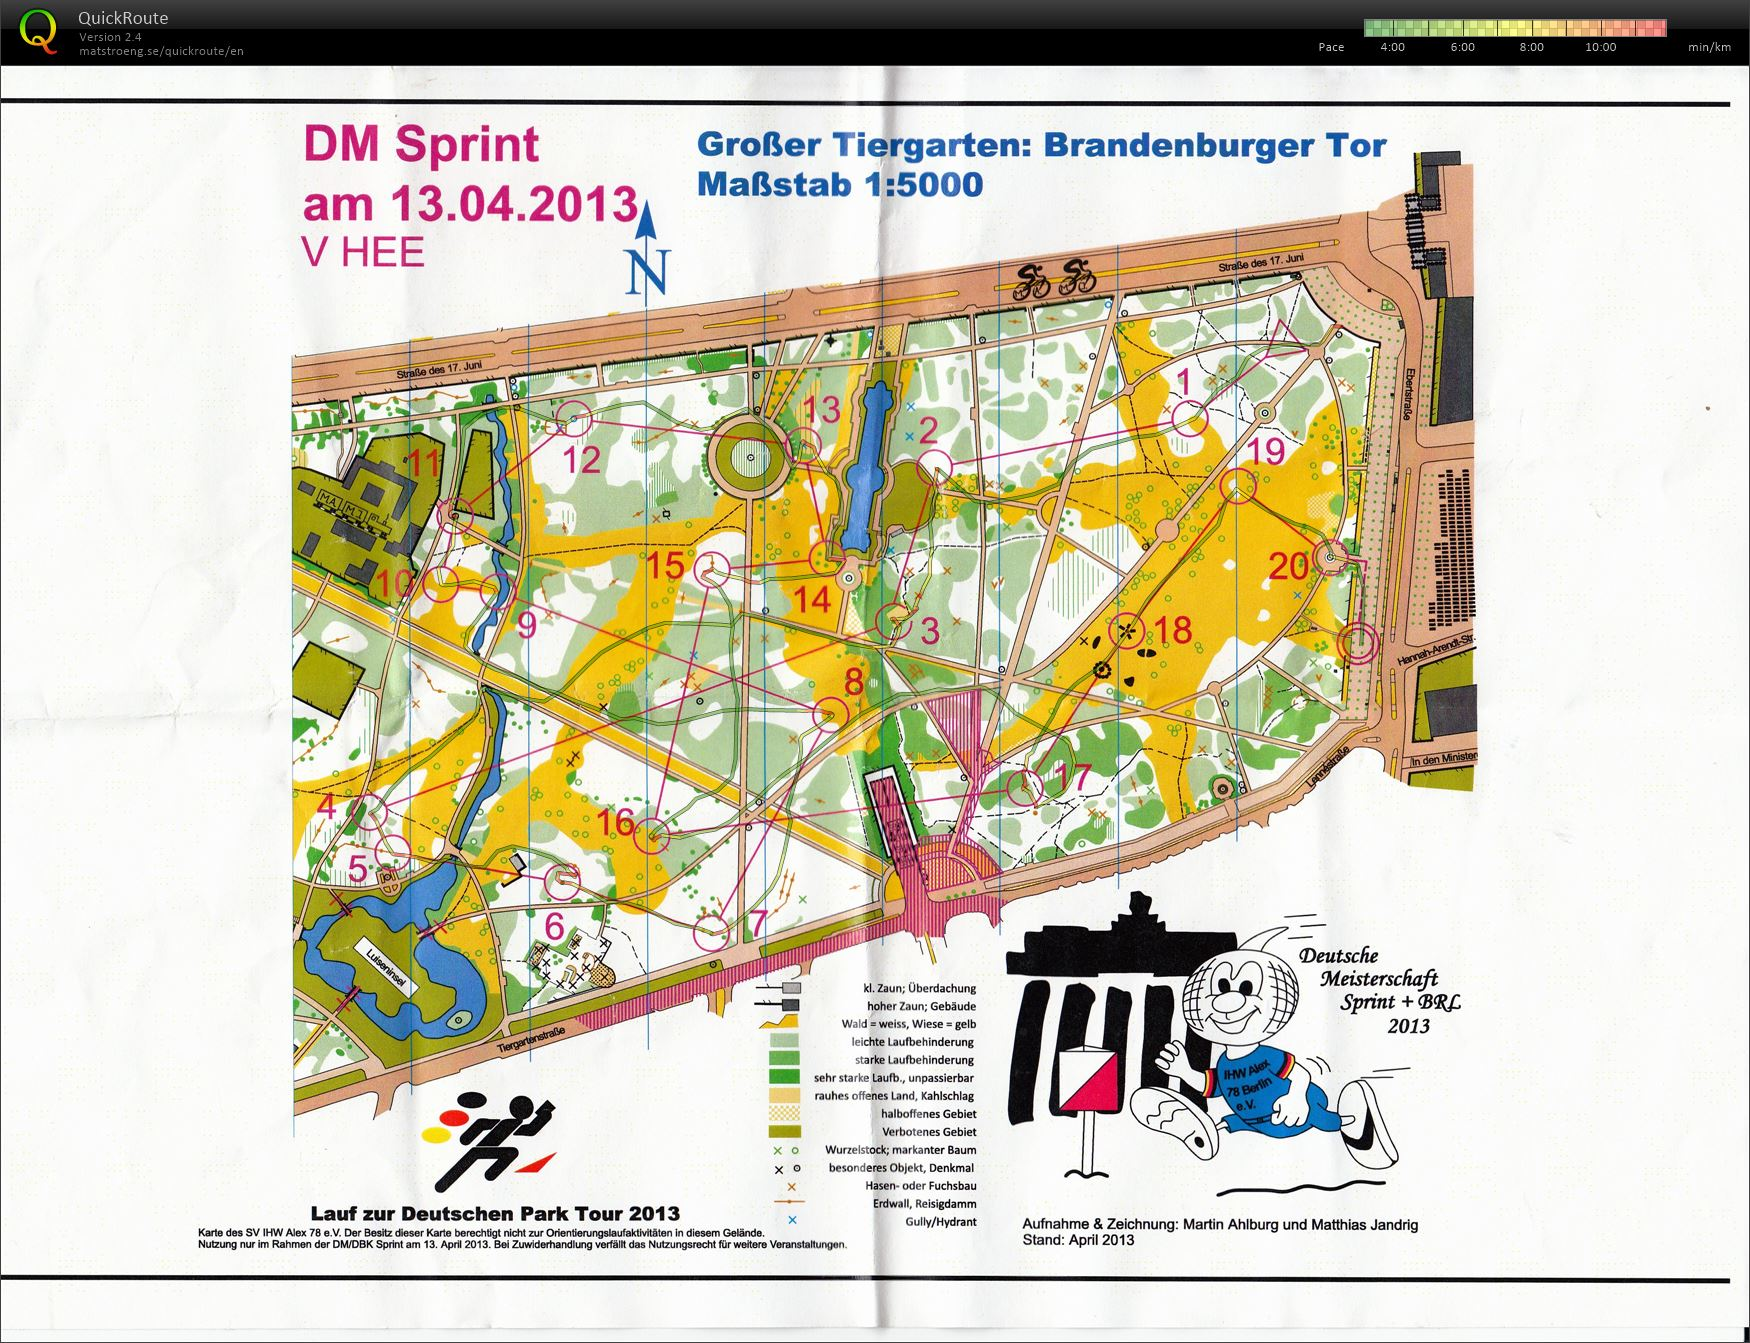 German Sprint Champs - Qualification (13/04/2013)